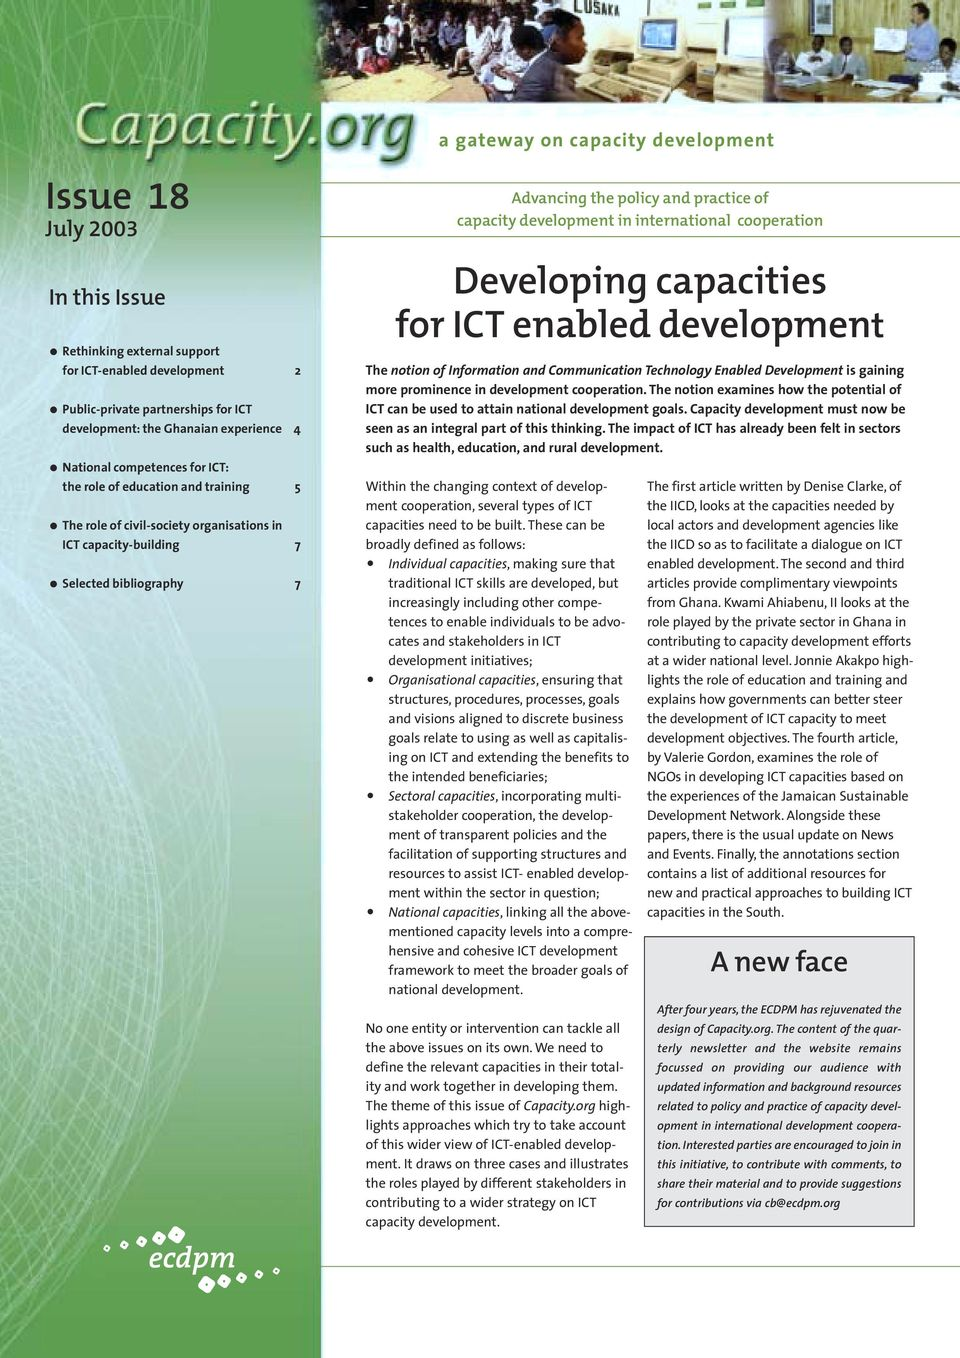 capacity development in international cooperation Developing capacities for ICT enabled development The notion of Information and Communication Technology Enabled Development is gaining more